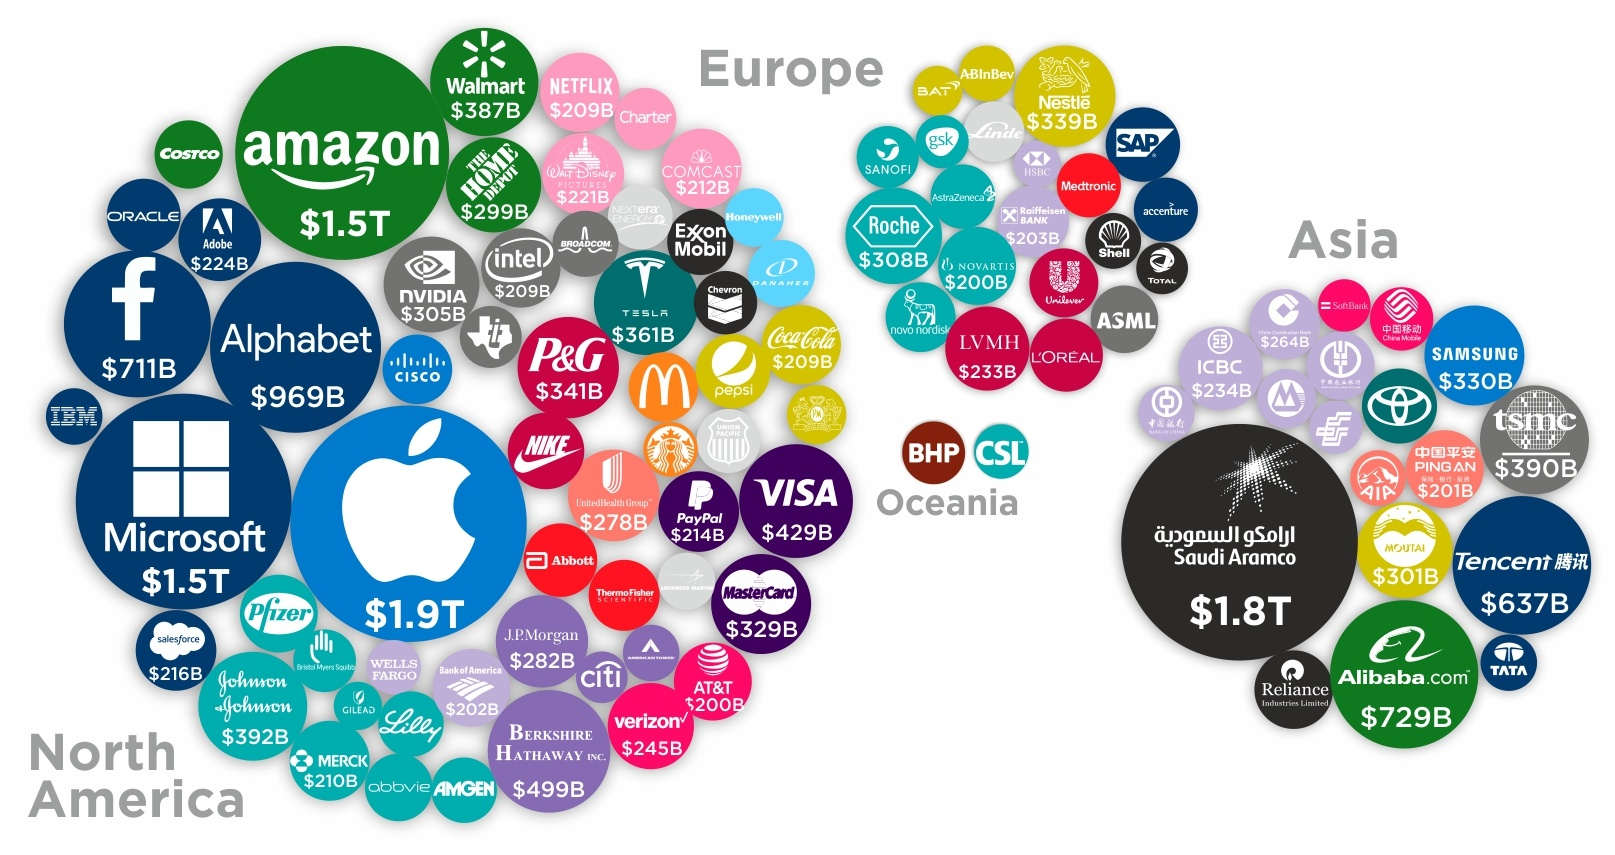 The Largest Brands of the World 2020